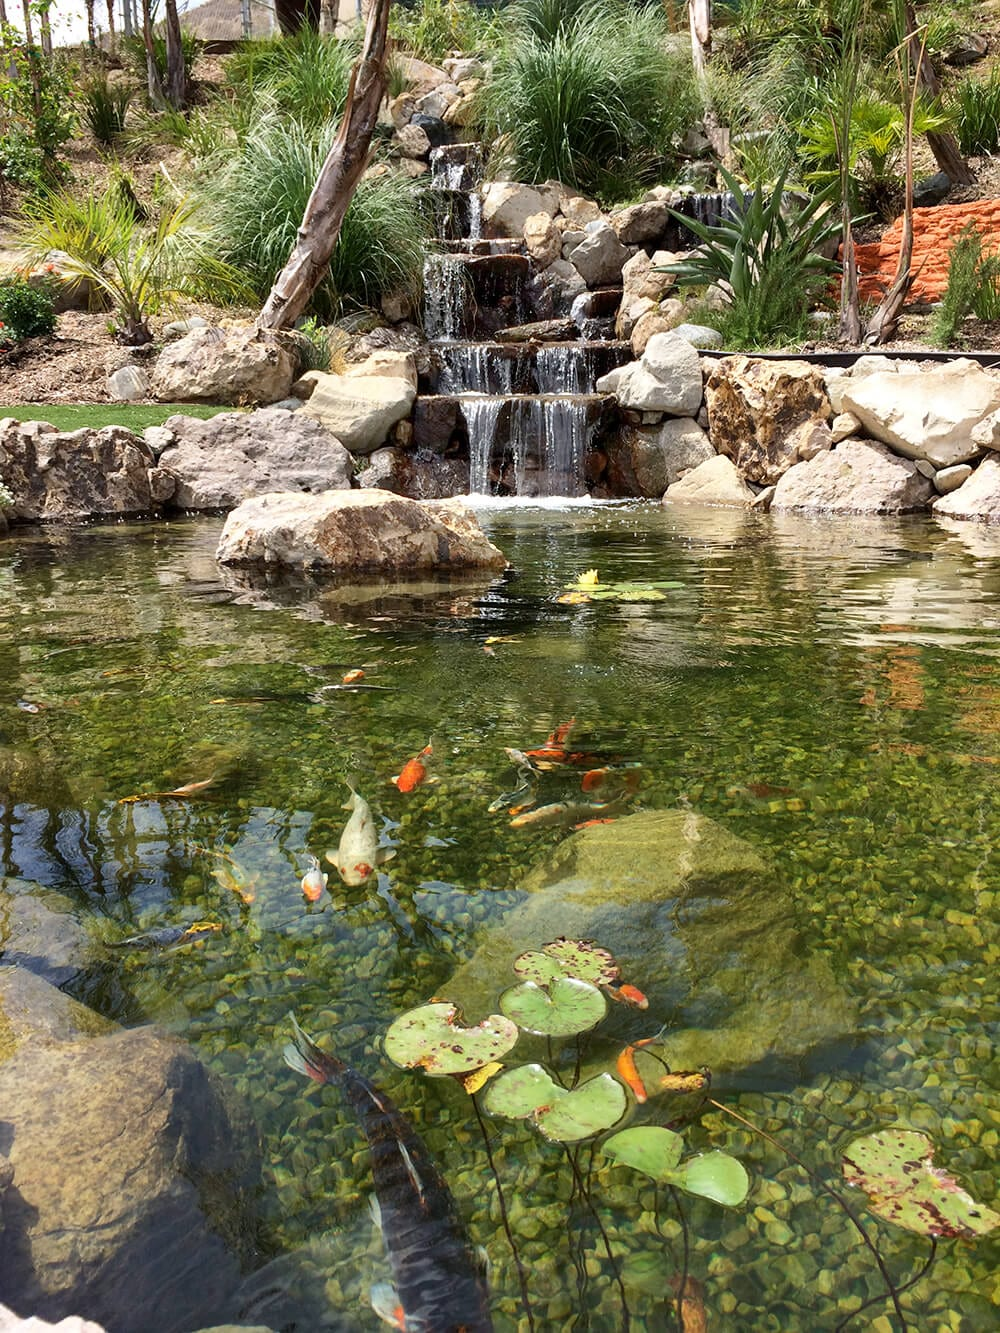 Waterfall after photo with koi fish